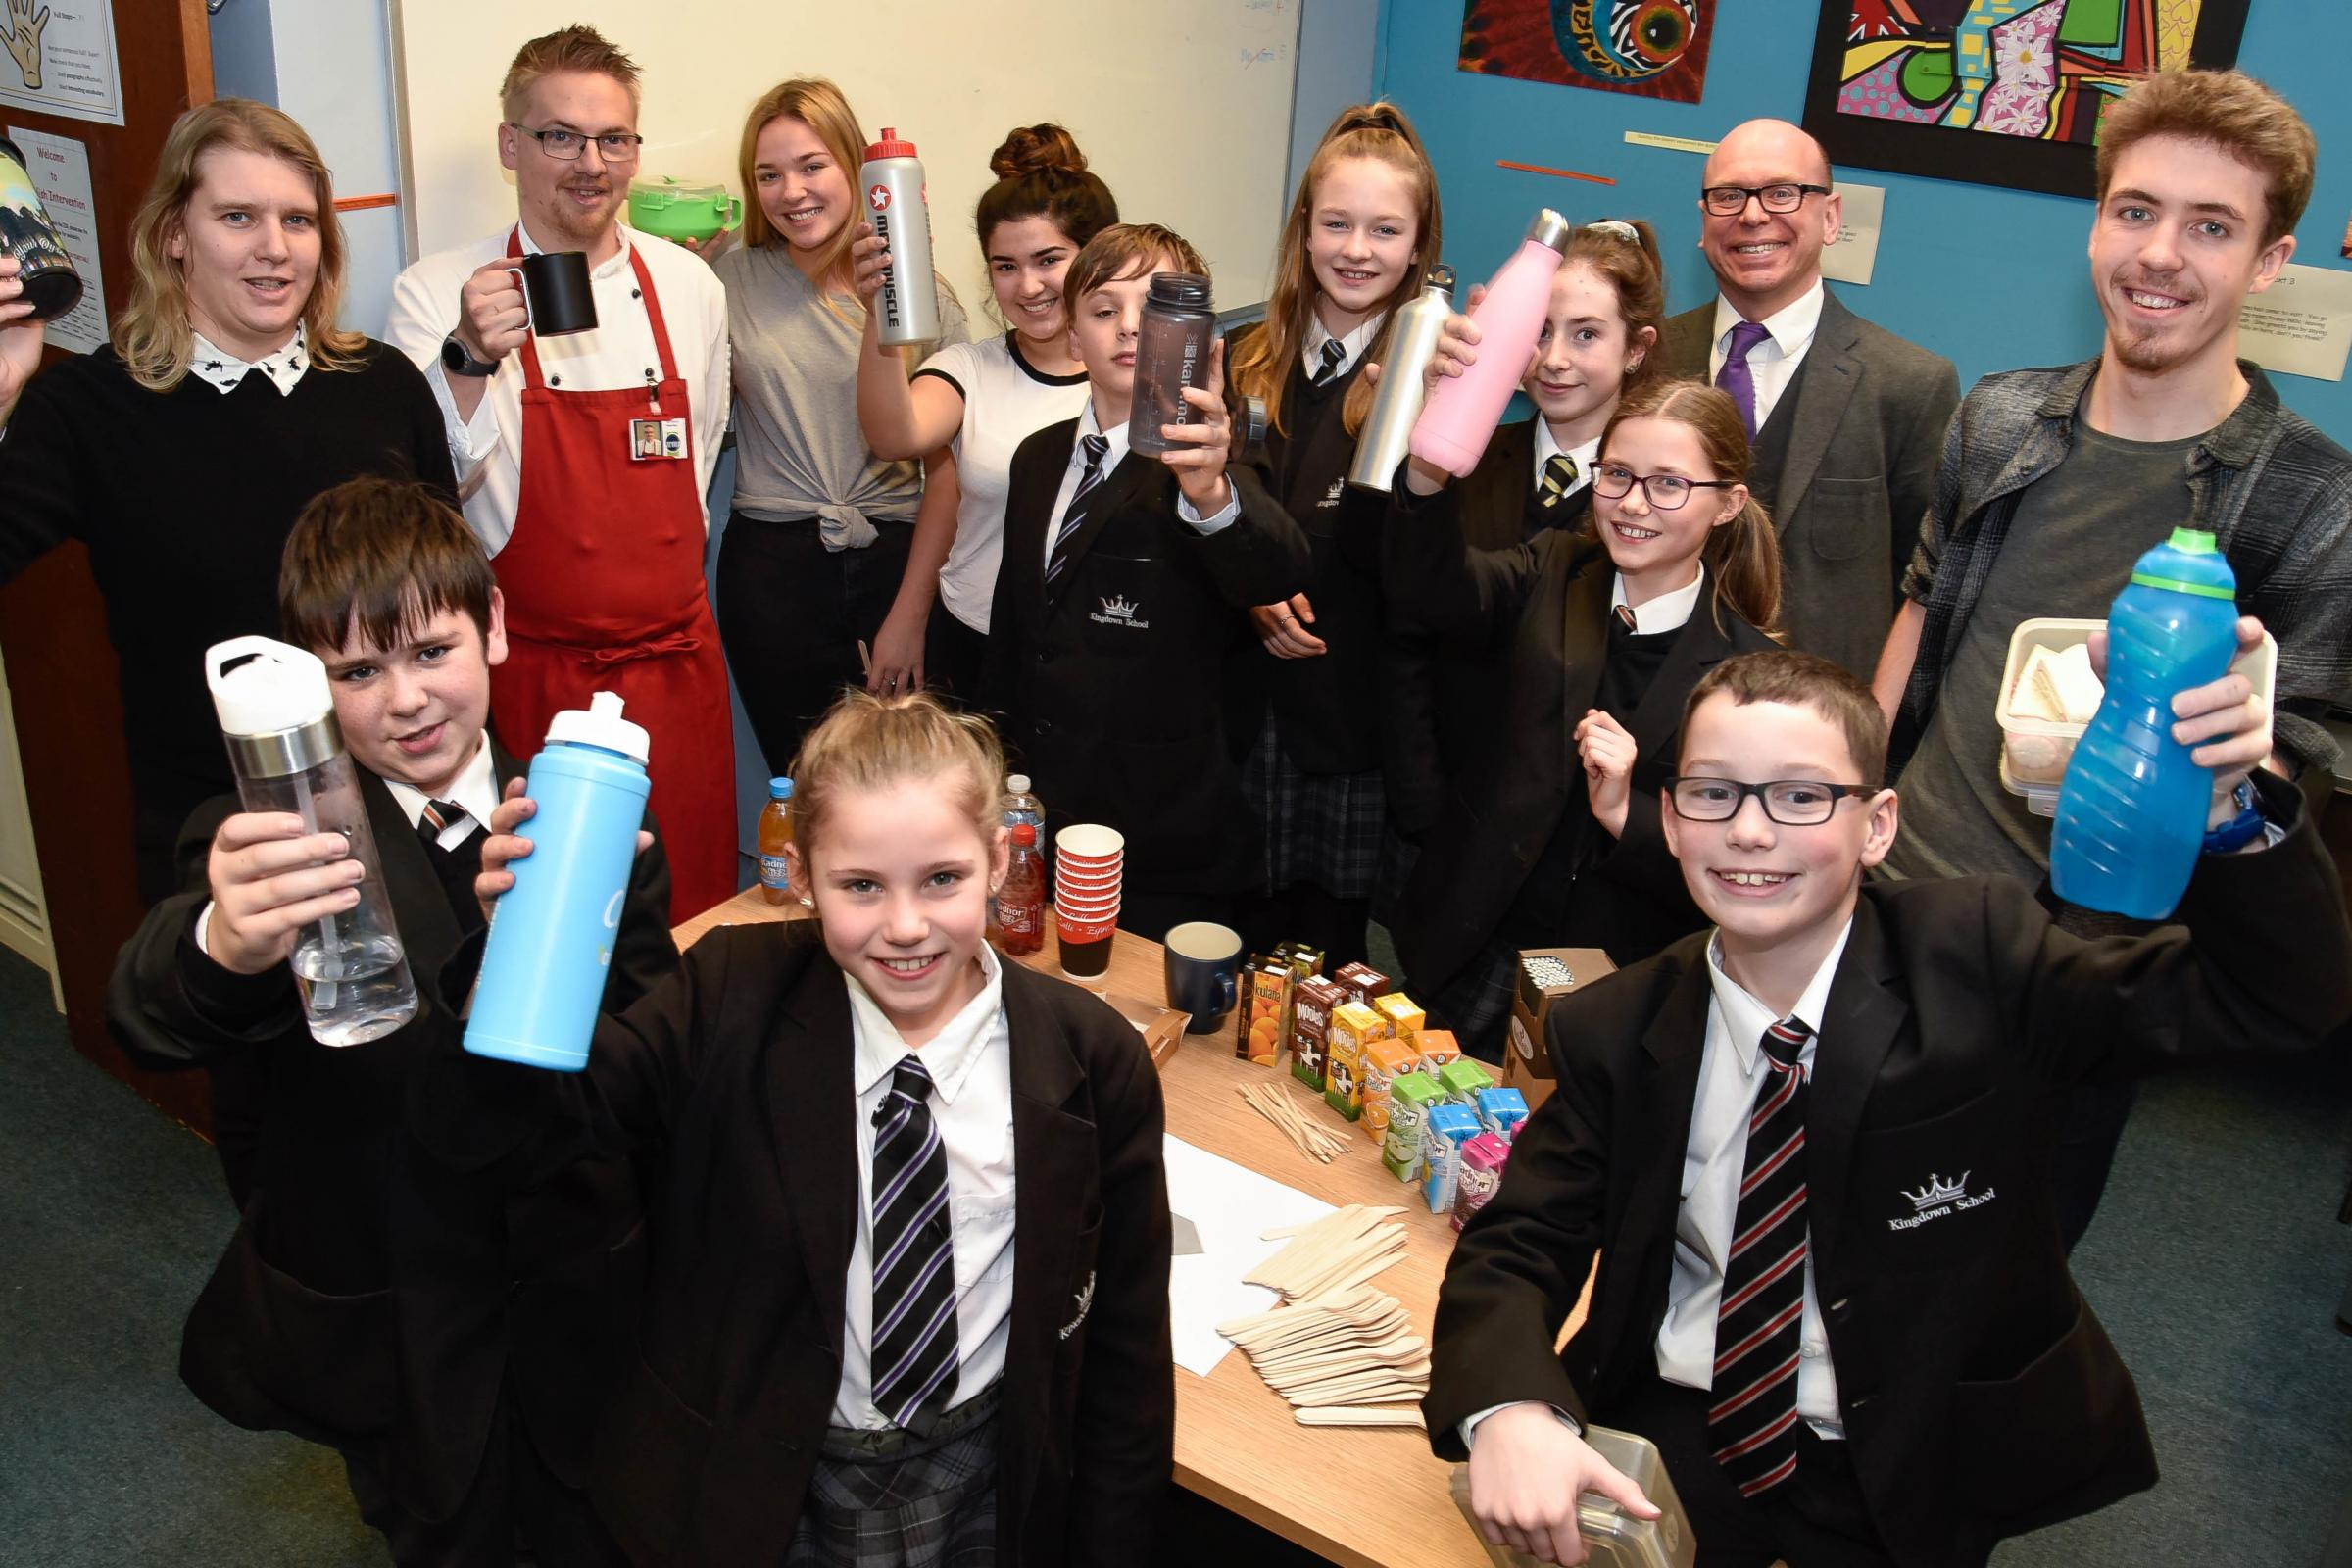 Kingdown School pupils and staff launch their 'Plastic Free Friday' campaign to encourage the use of non-plastic or re-usable food and drink containers and utensils Photo: www.gphillipsphotography.com GP1571